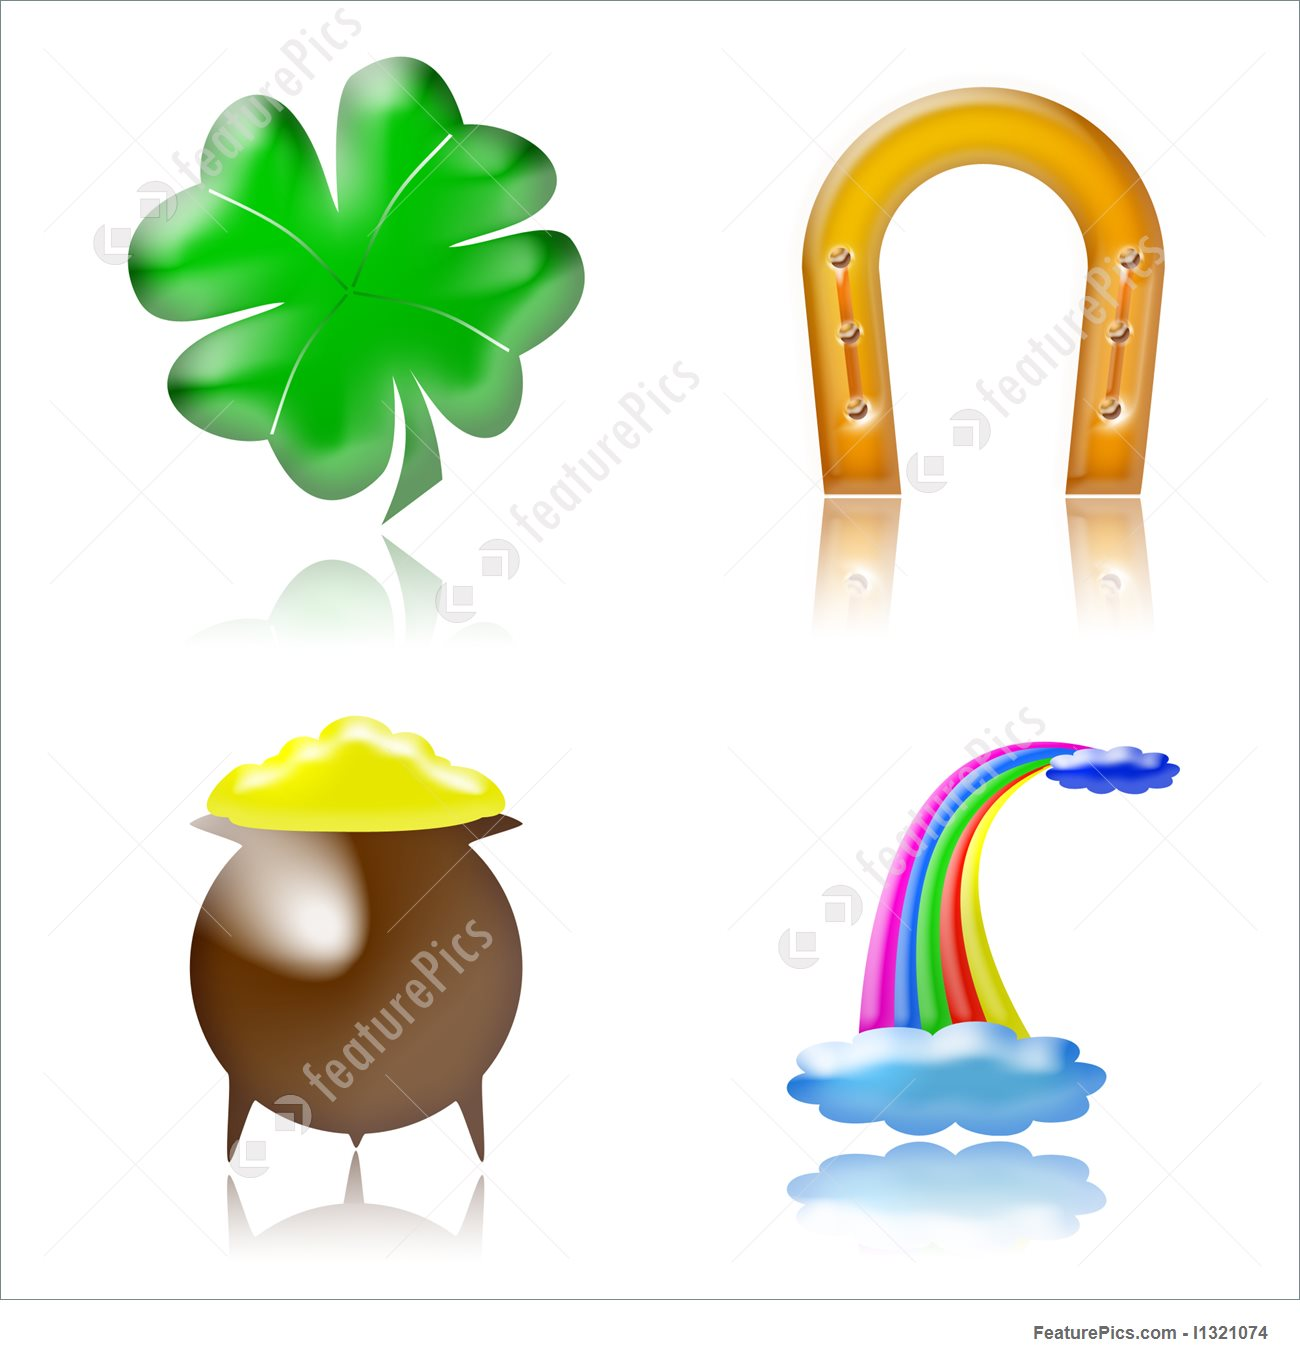 Lucky charm clip art png freeuse Good Luck Charms Stock Illustration I1321074 at FeaturePics png freeuse